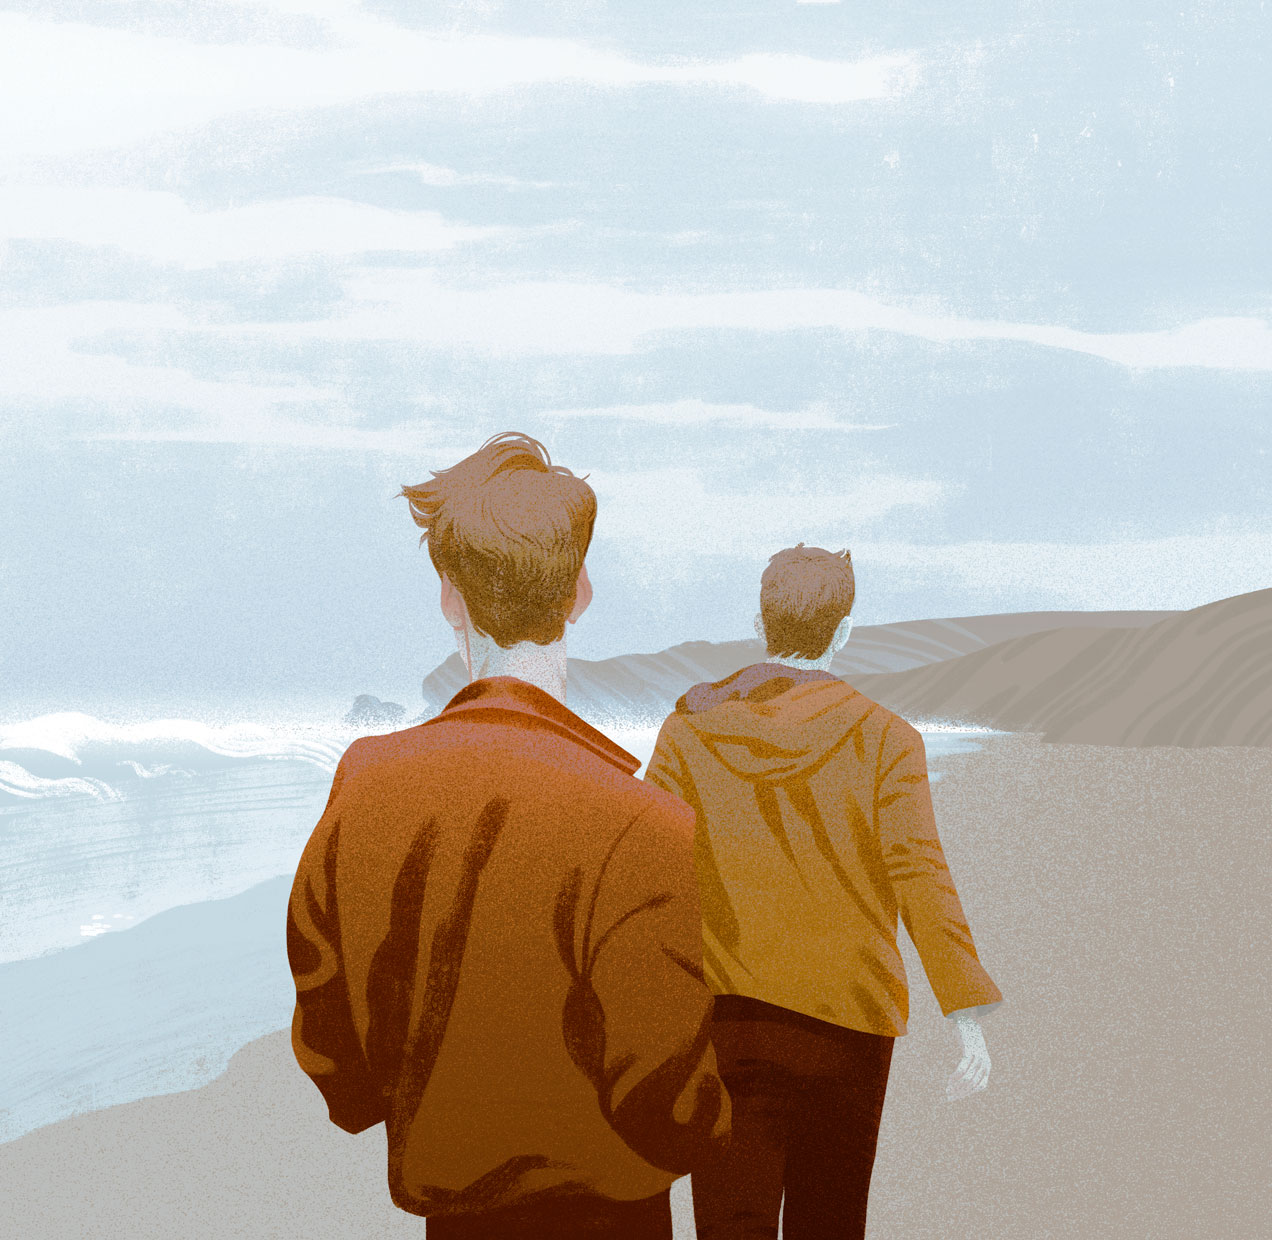 An illustration of two people walking along a seaside beach on an overcast day. Personal illustration by Canadian illustrator Cristian Fowlie.